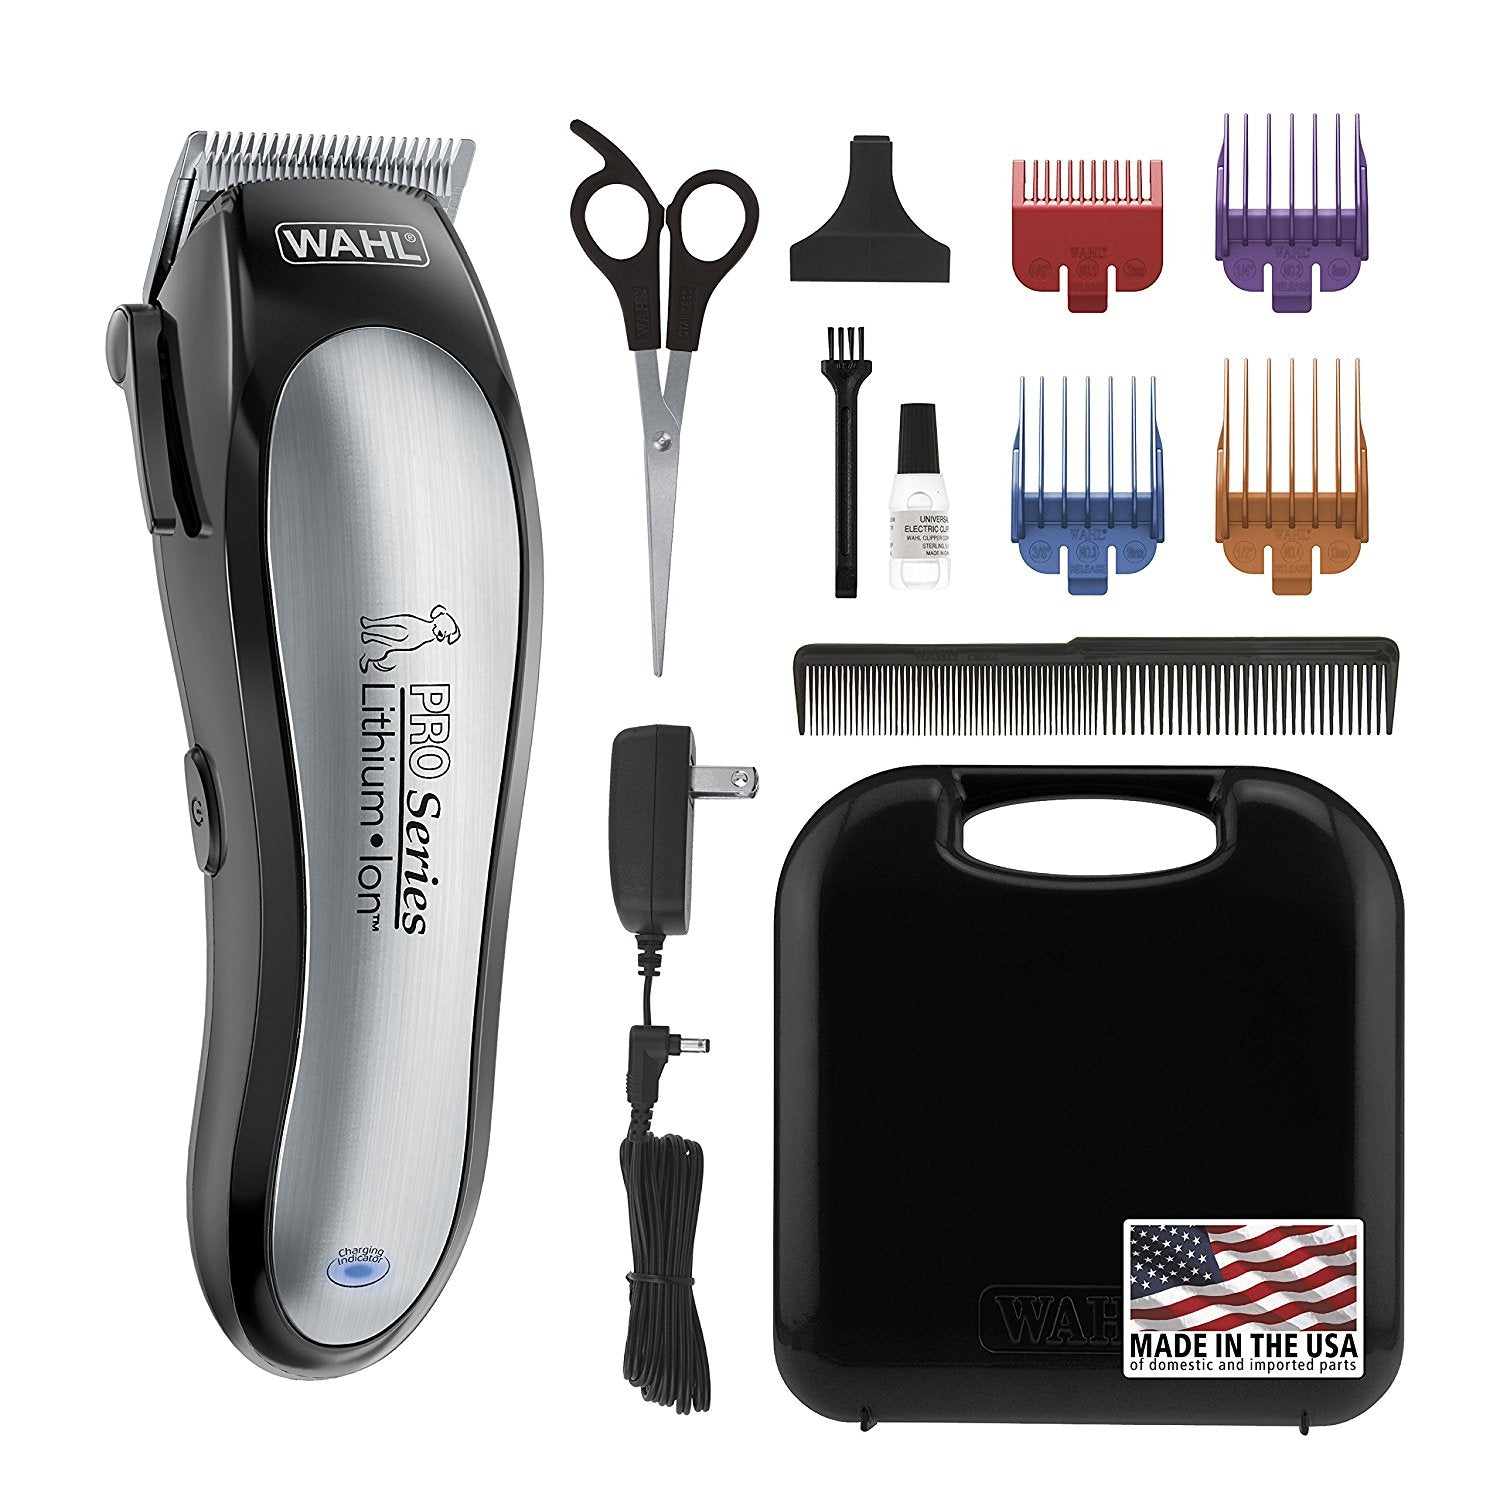 WAHL 9766 Lithium Ion Pro Series Cordless Dog Clippers, Rechargeable Low Noise (Like New)